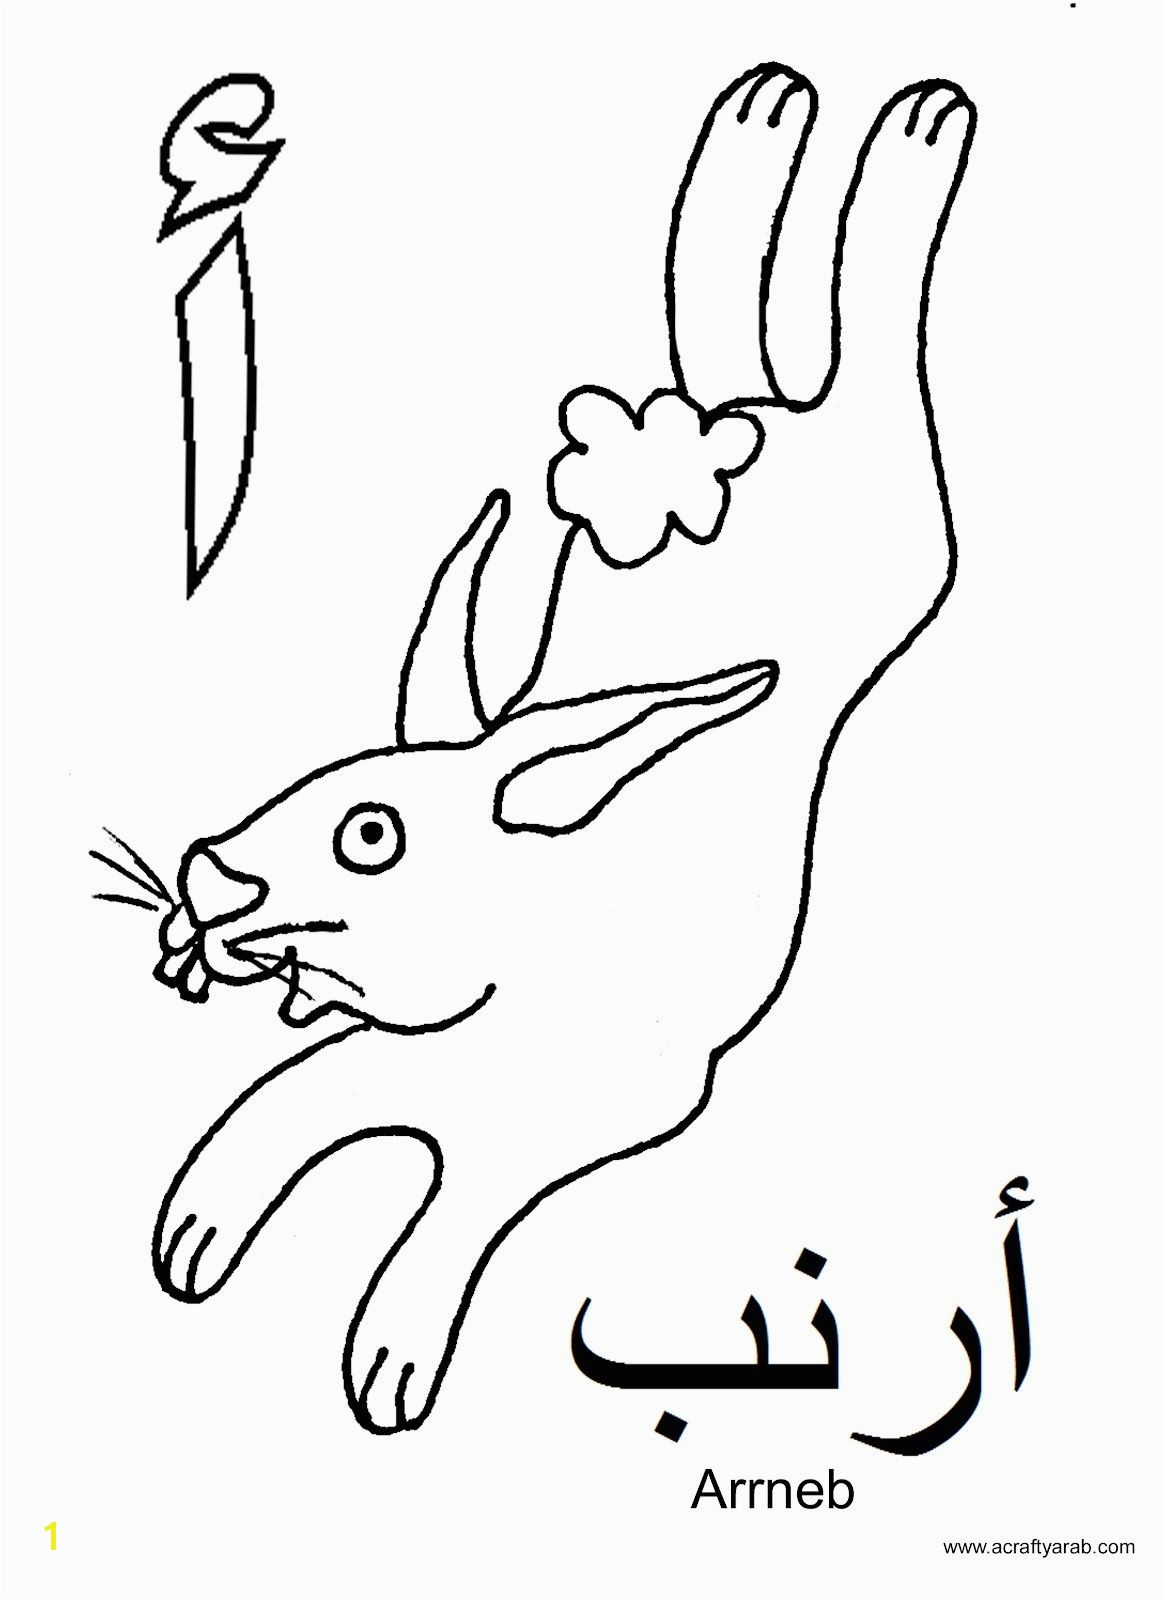 Arabic Alphabet Coloring Pages Pdf A Crafty Arab Arabic Alphabet Coloring Pages Alif is for Arrnab